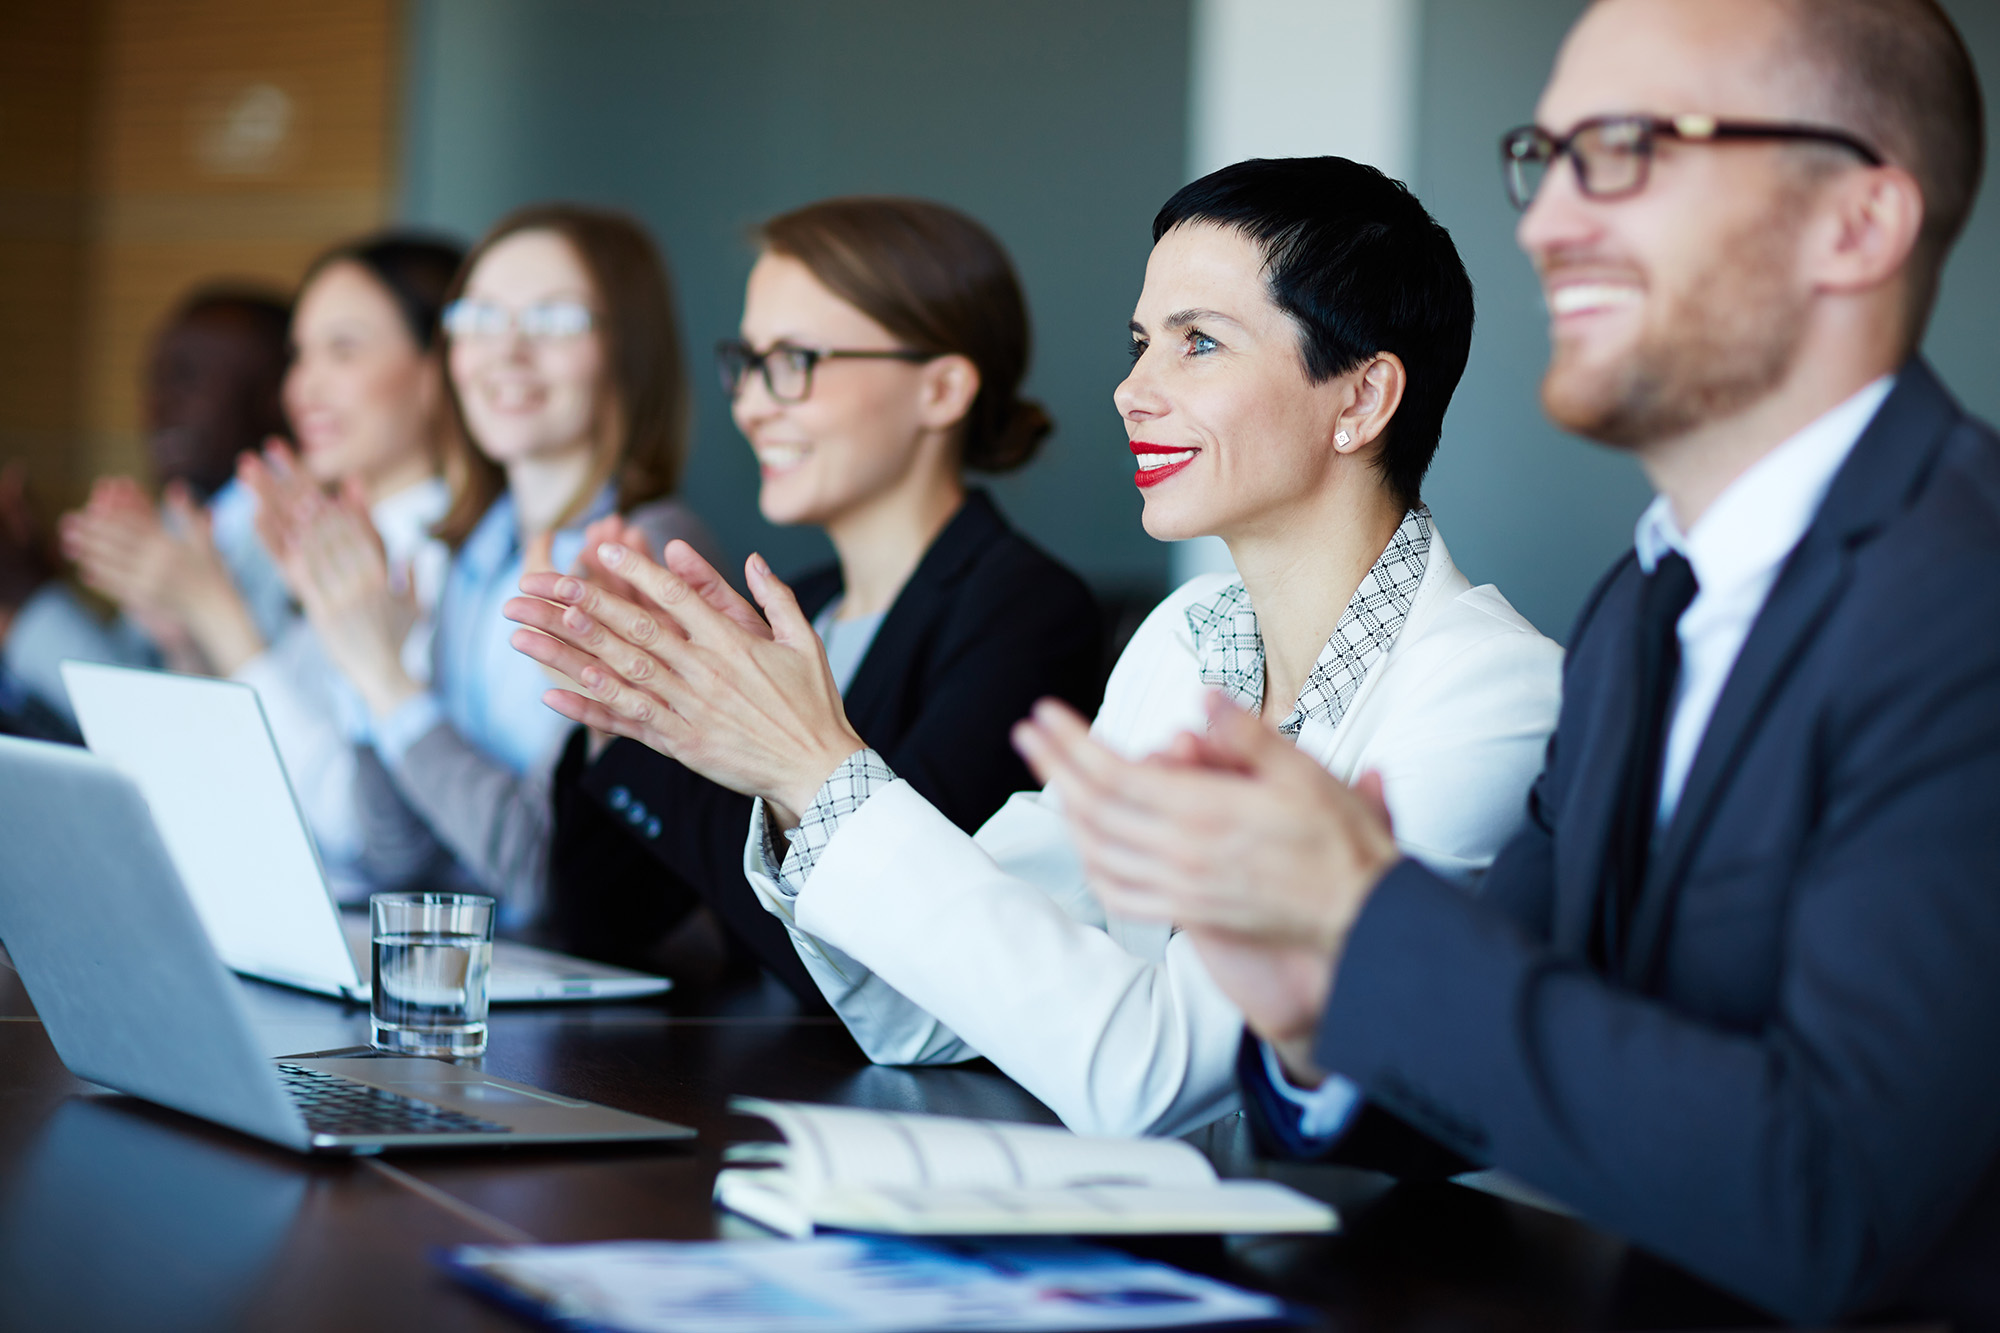 co-workers clapping at presentation